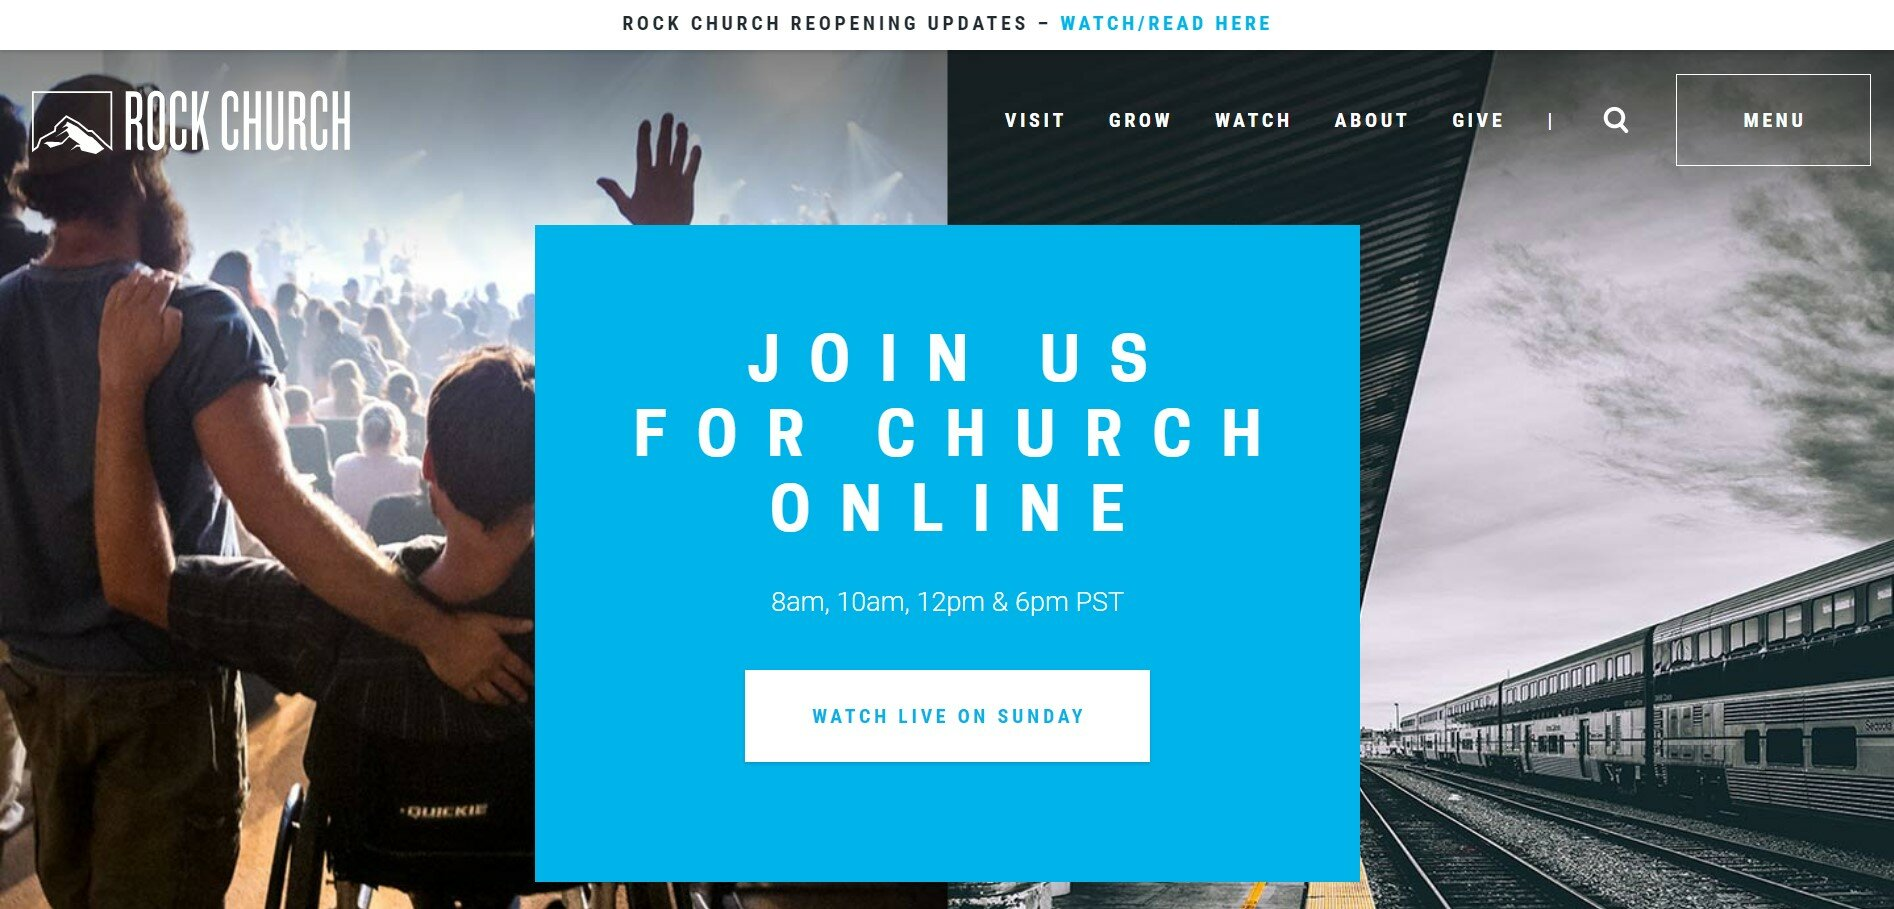 The Rock Church has one of our favorite church websites.